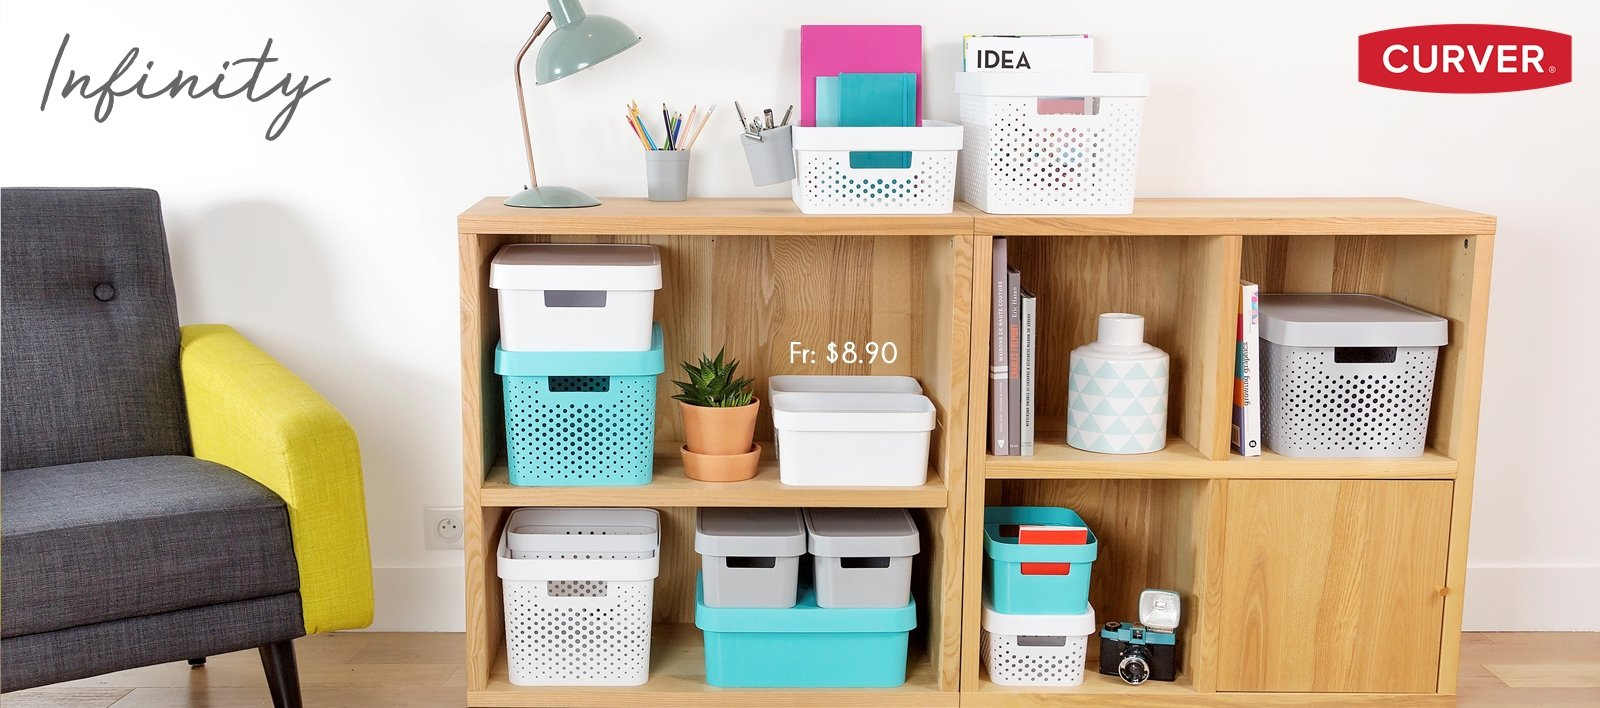 Curver style boxes rattan design home storage organisation